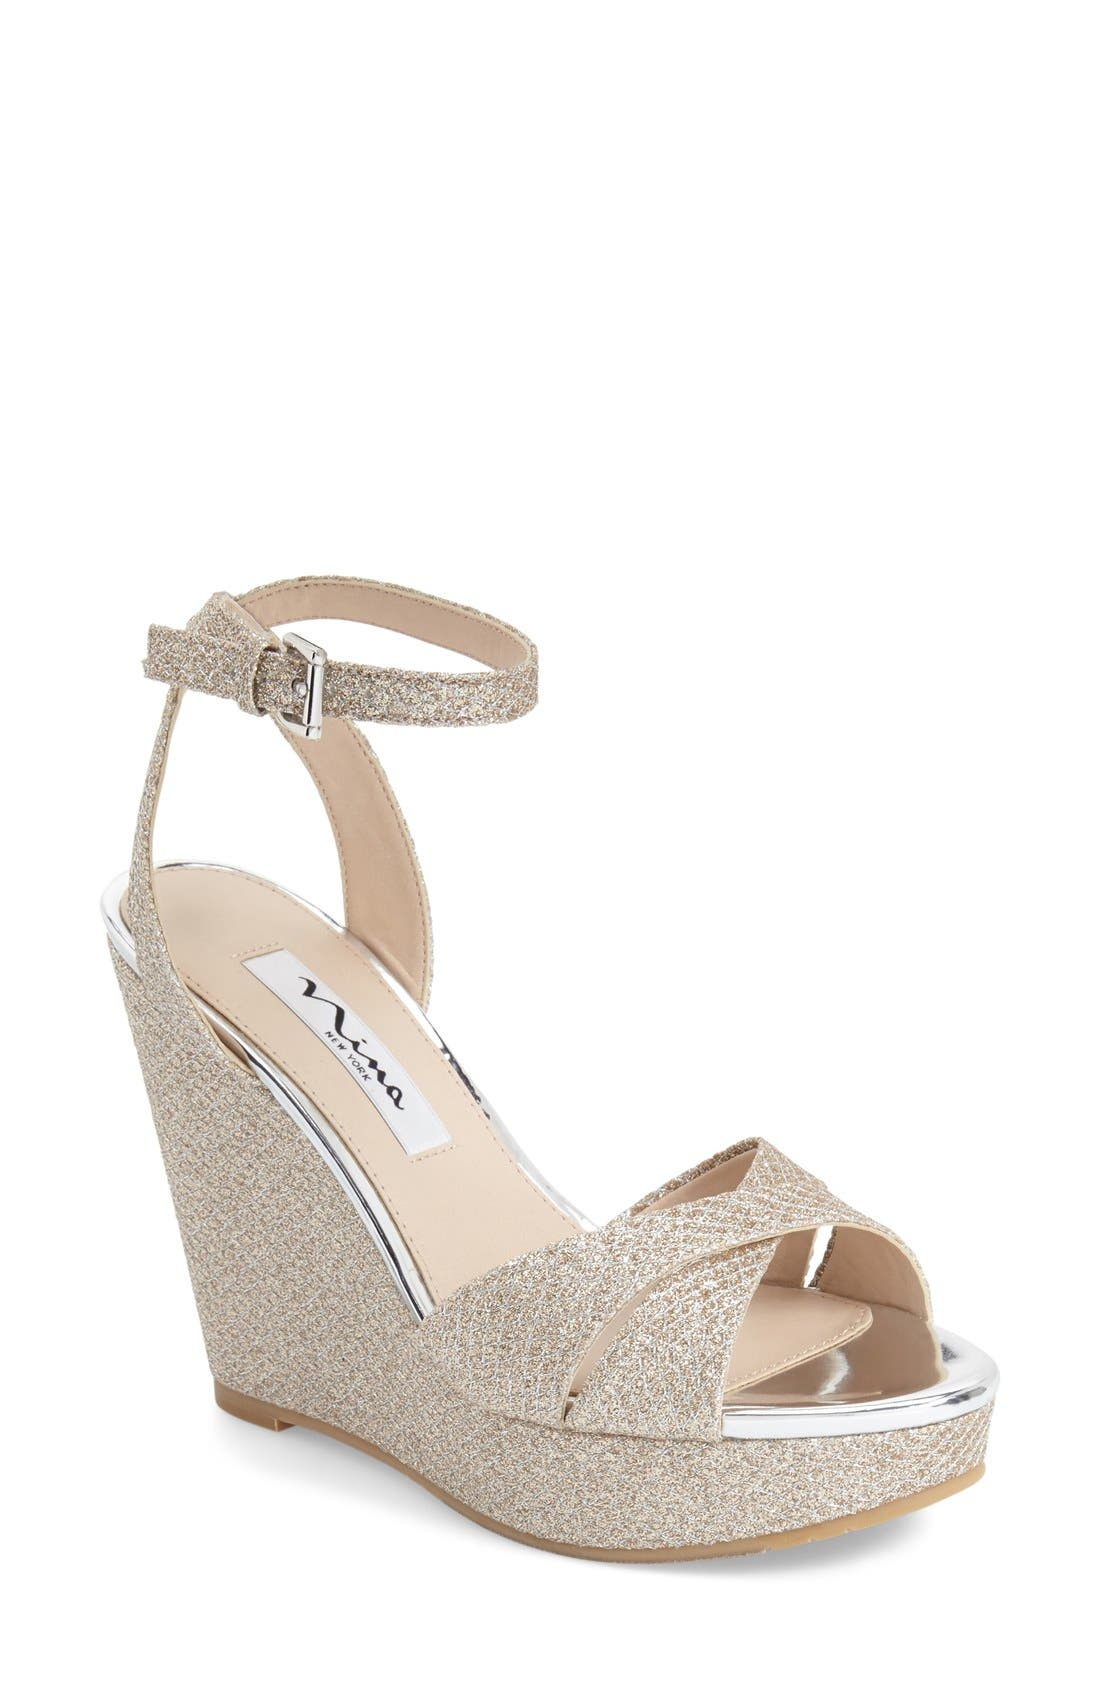 Main Image - Nina 'Gianina' Glitter Mesh Wedge Sandal (Women)